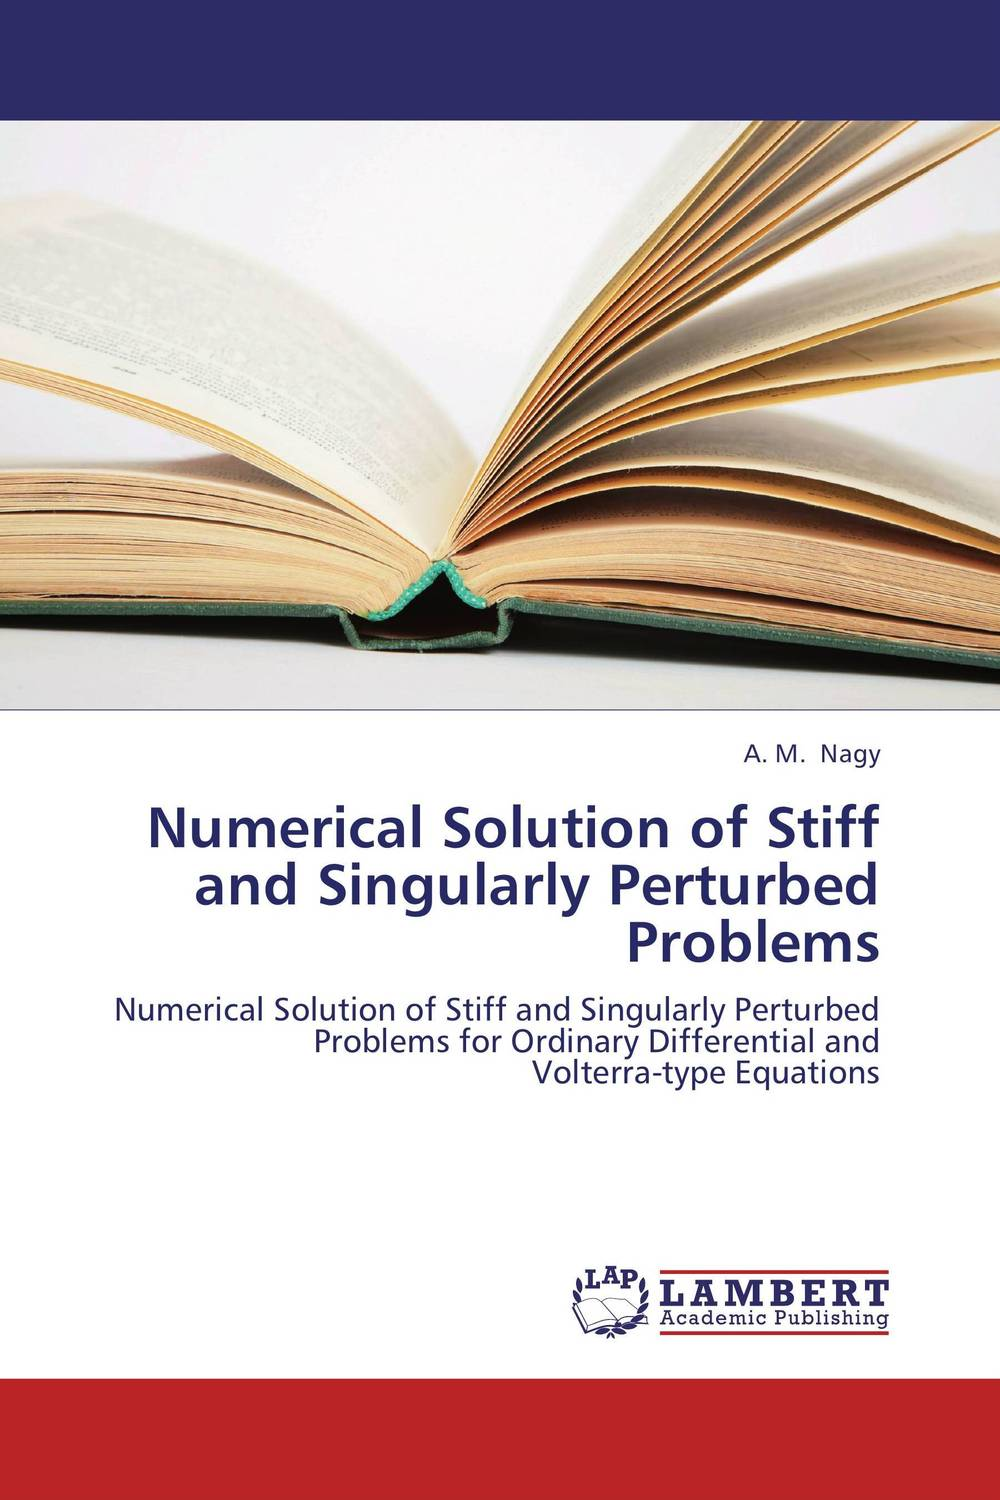 Numerical Solution of Stiff and Singularly Perturbed Problems collocation methods for volterra integral and related functional differential equations